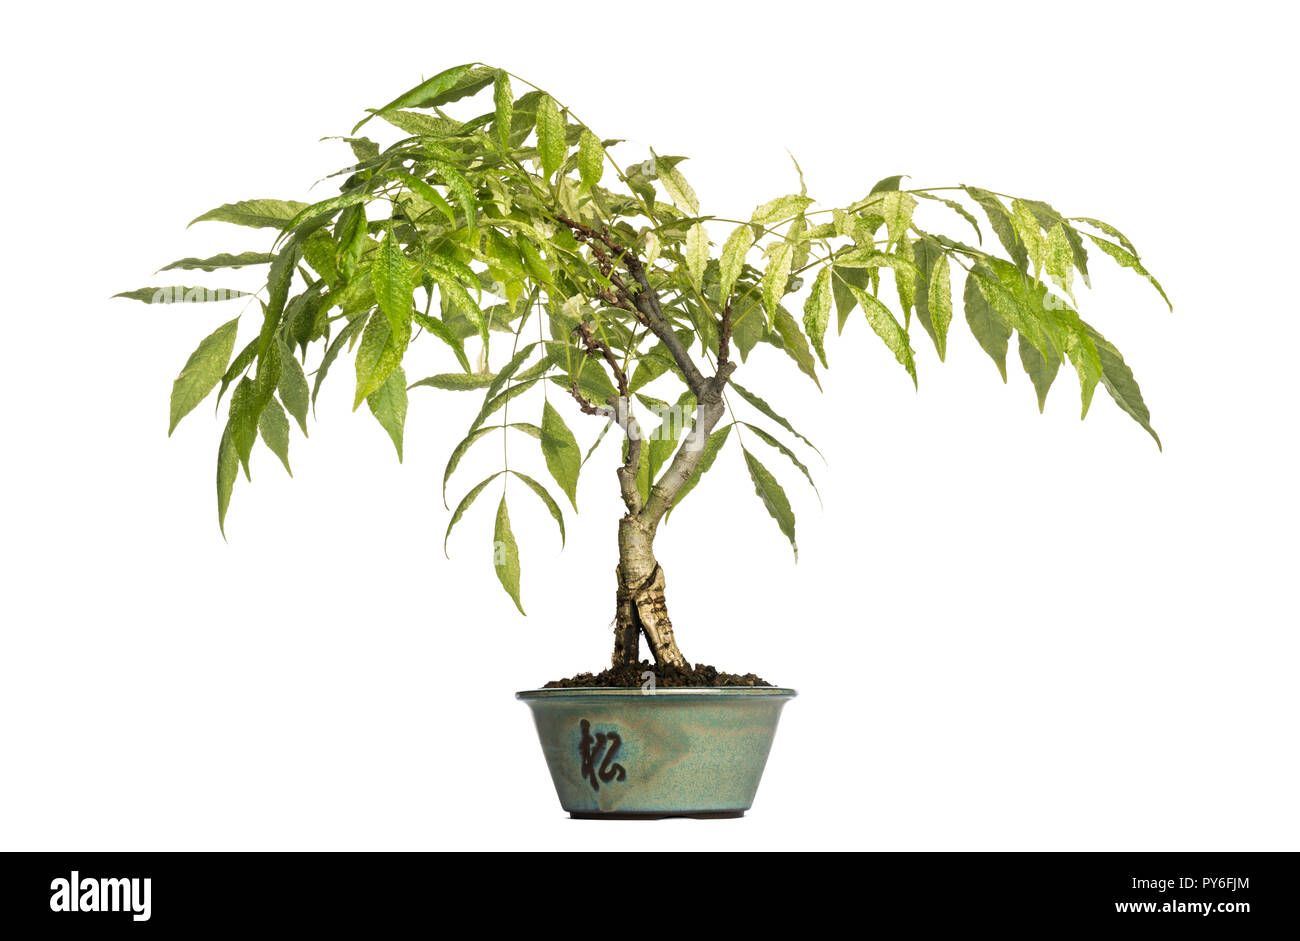 Wisteria Bonsai Tree Isolated On White Stock Photo Alamy